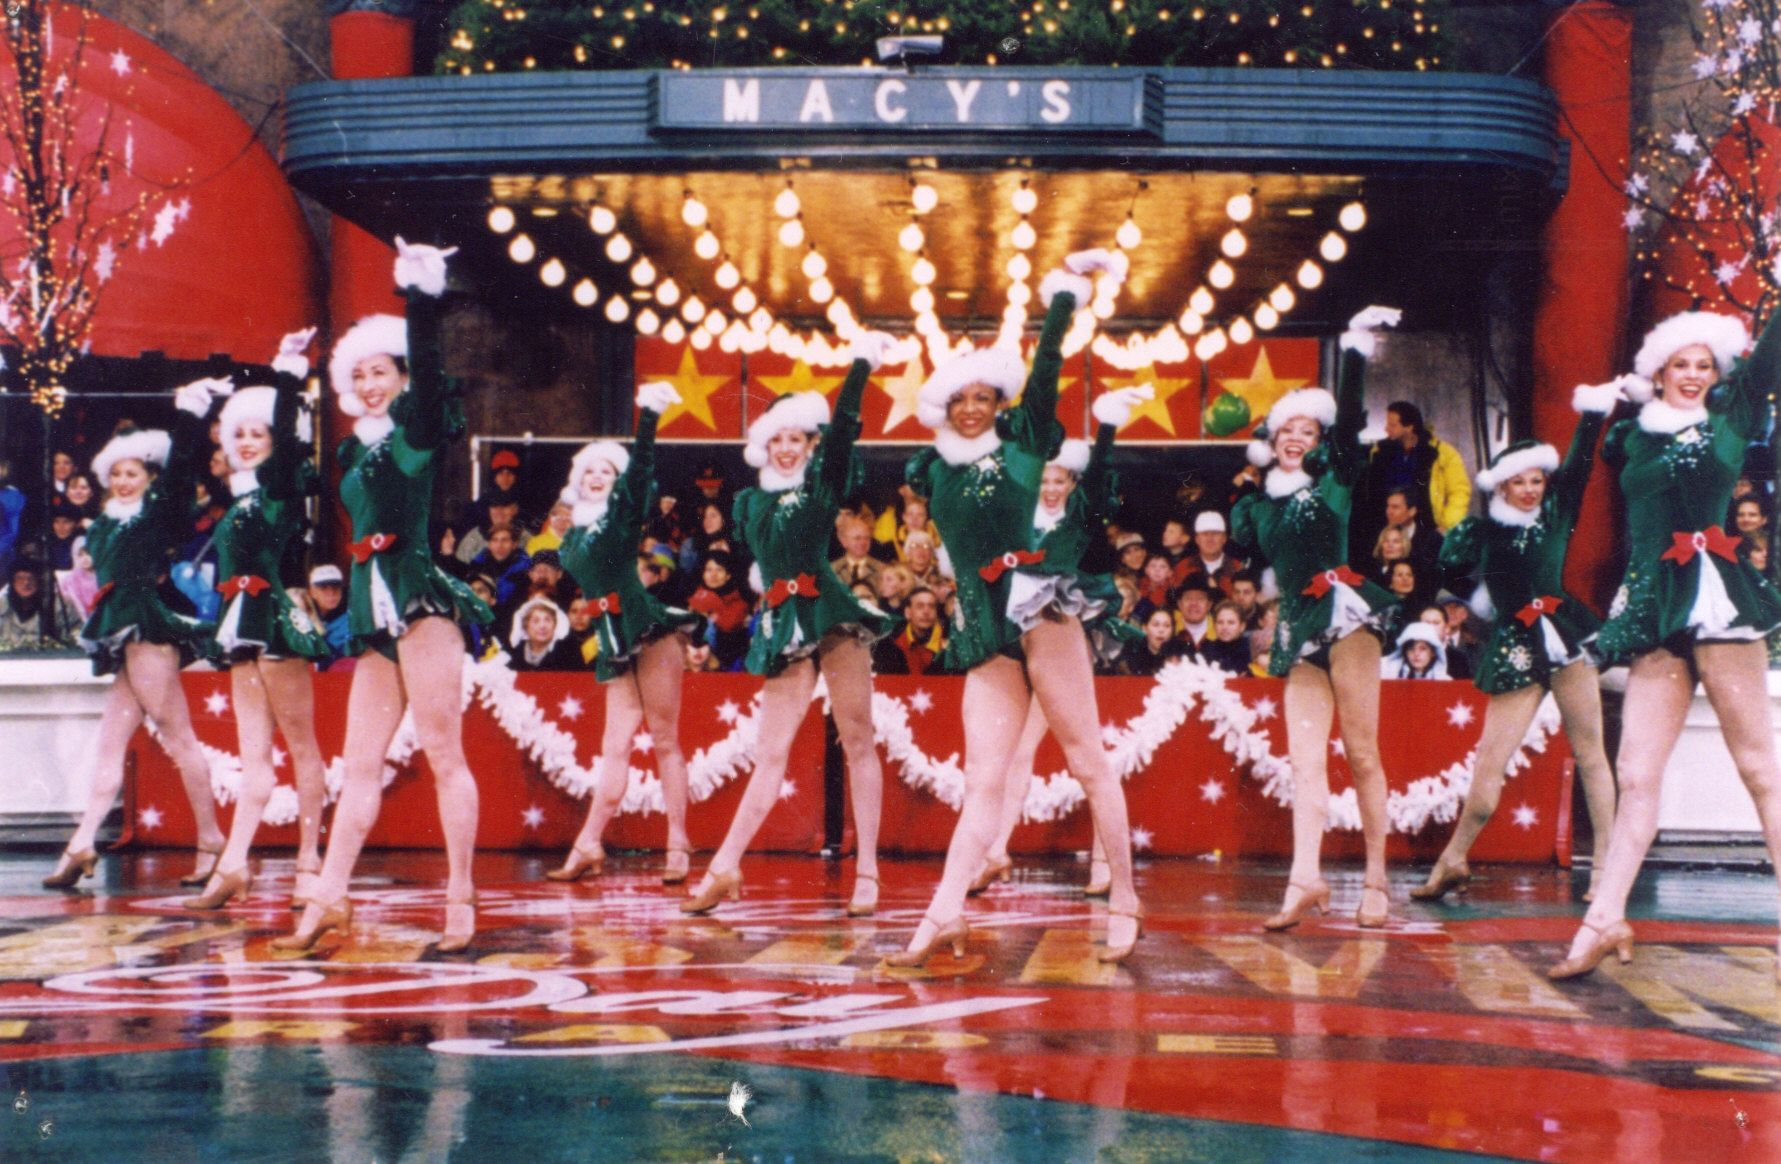 Rockettes See Them In Person Since I M Too Short To Be One Macy S Thanksgiving Day Parade Thanksgiving Day Parade Thanksgiving Parade